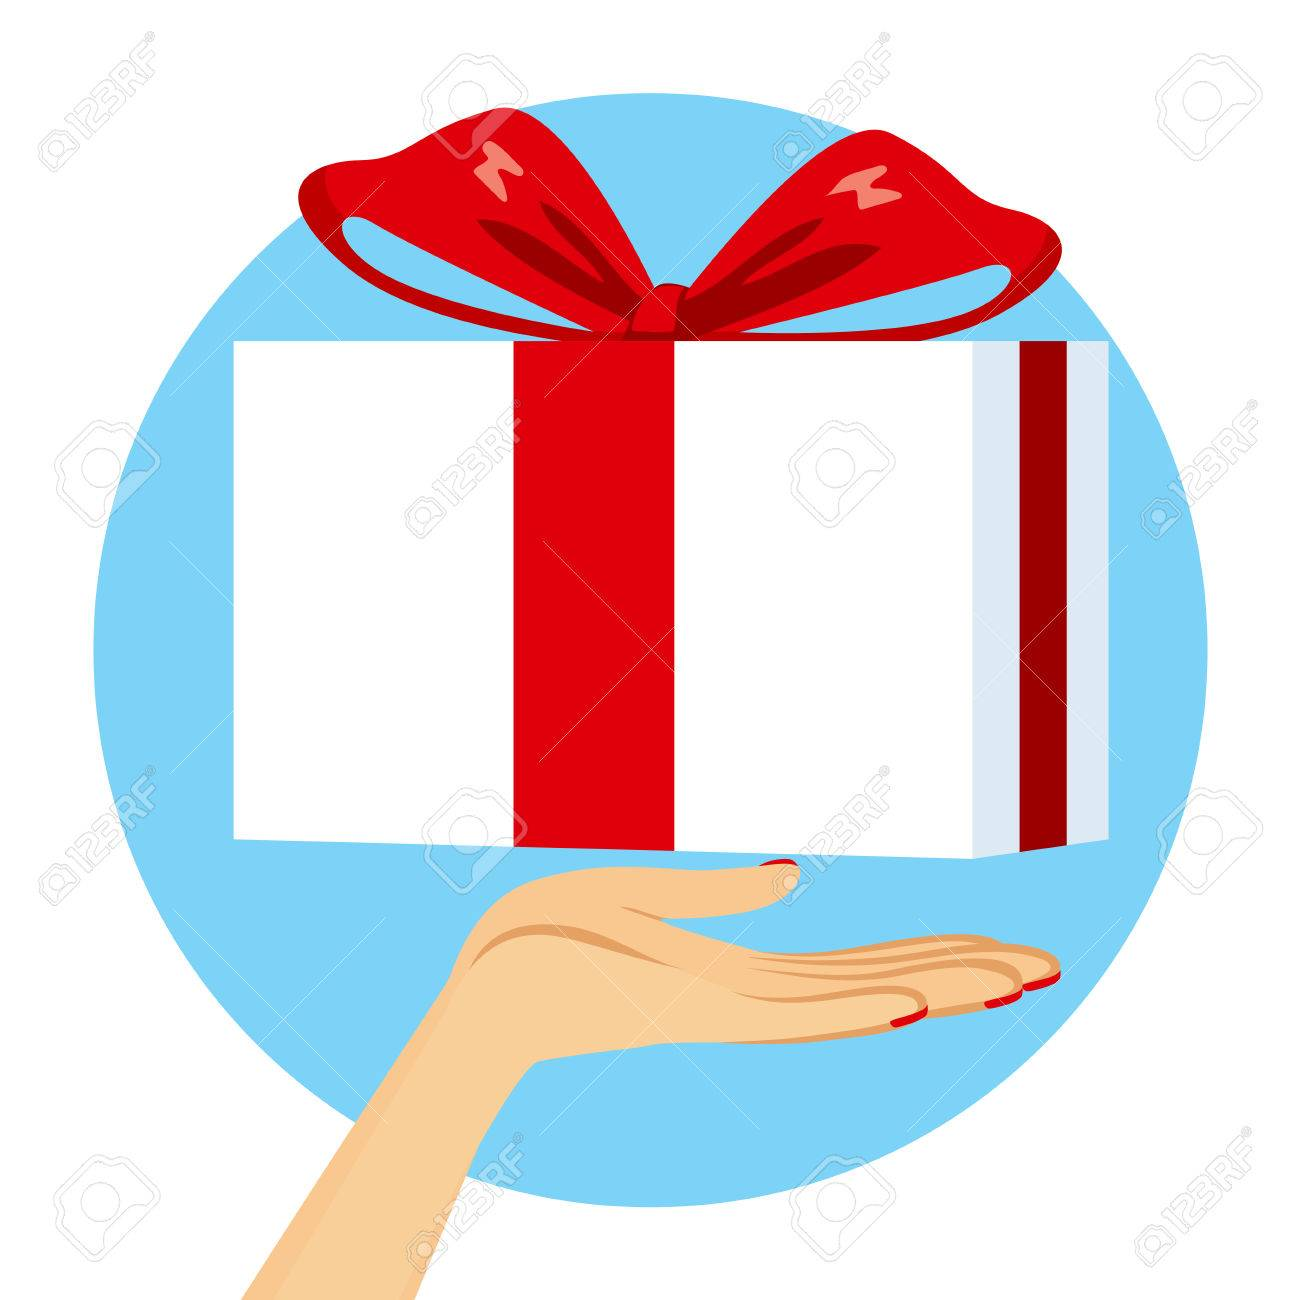 Close up illustration of female hand with gift giving concept close up illustration of female hand with gift giving concept stock vector 65459043 negle Choice Image